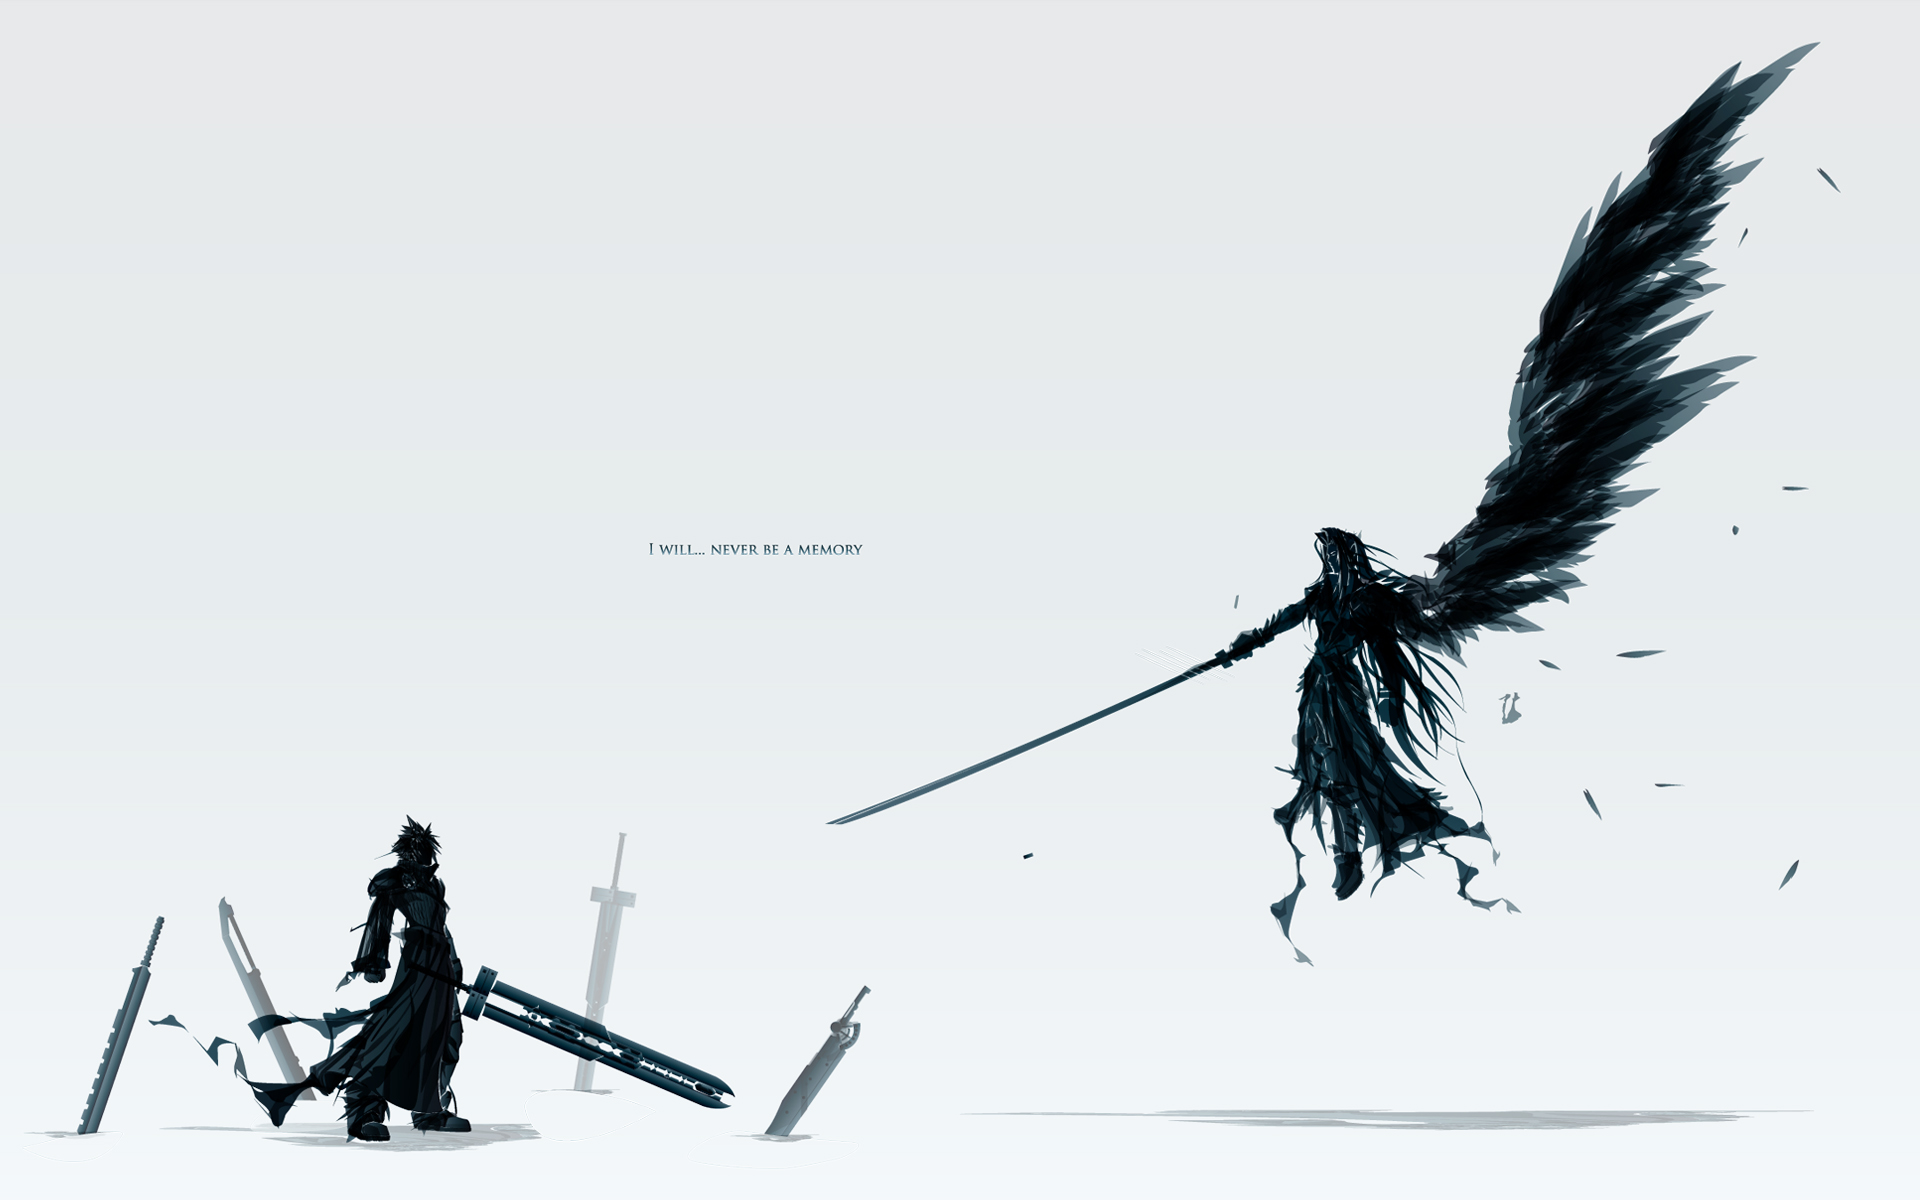 cloud_strife final_fantasy final_fantasy_vii final_fantasy_vii_advent_children katana polychromatic sephiroth sword weapon white wings